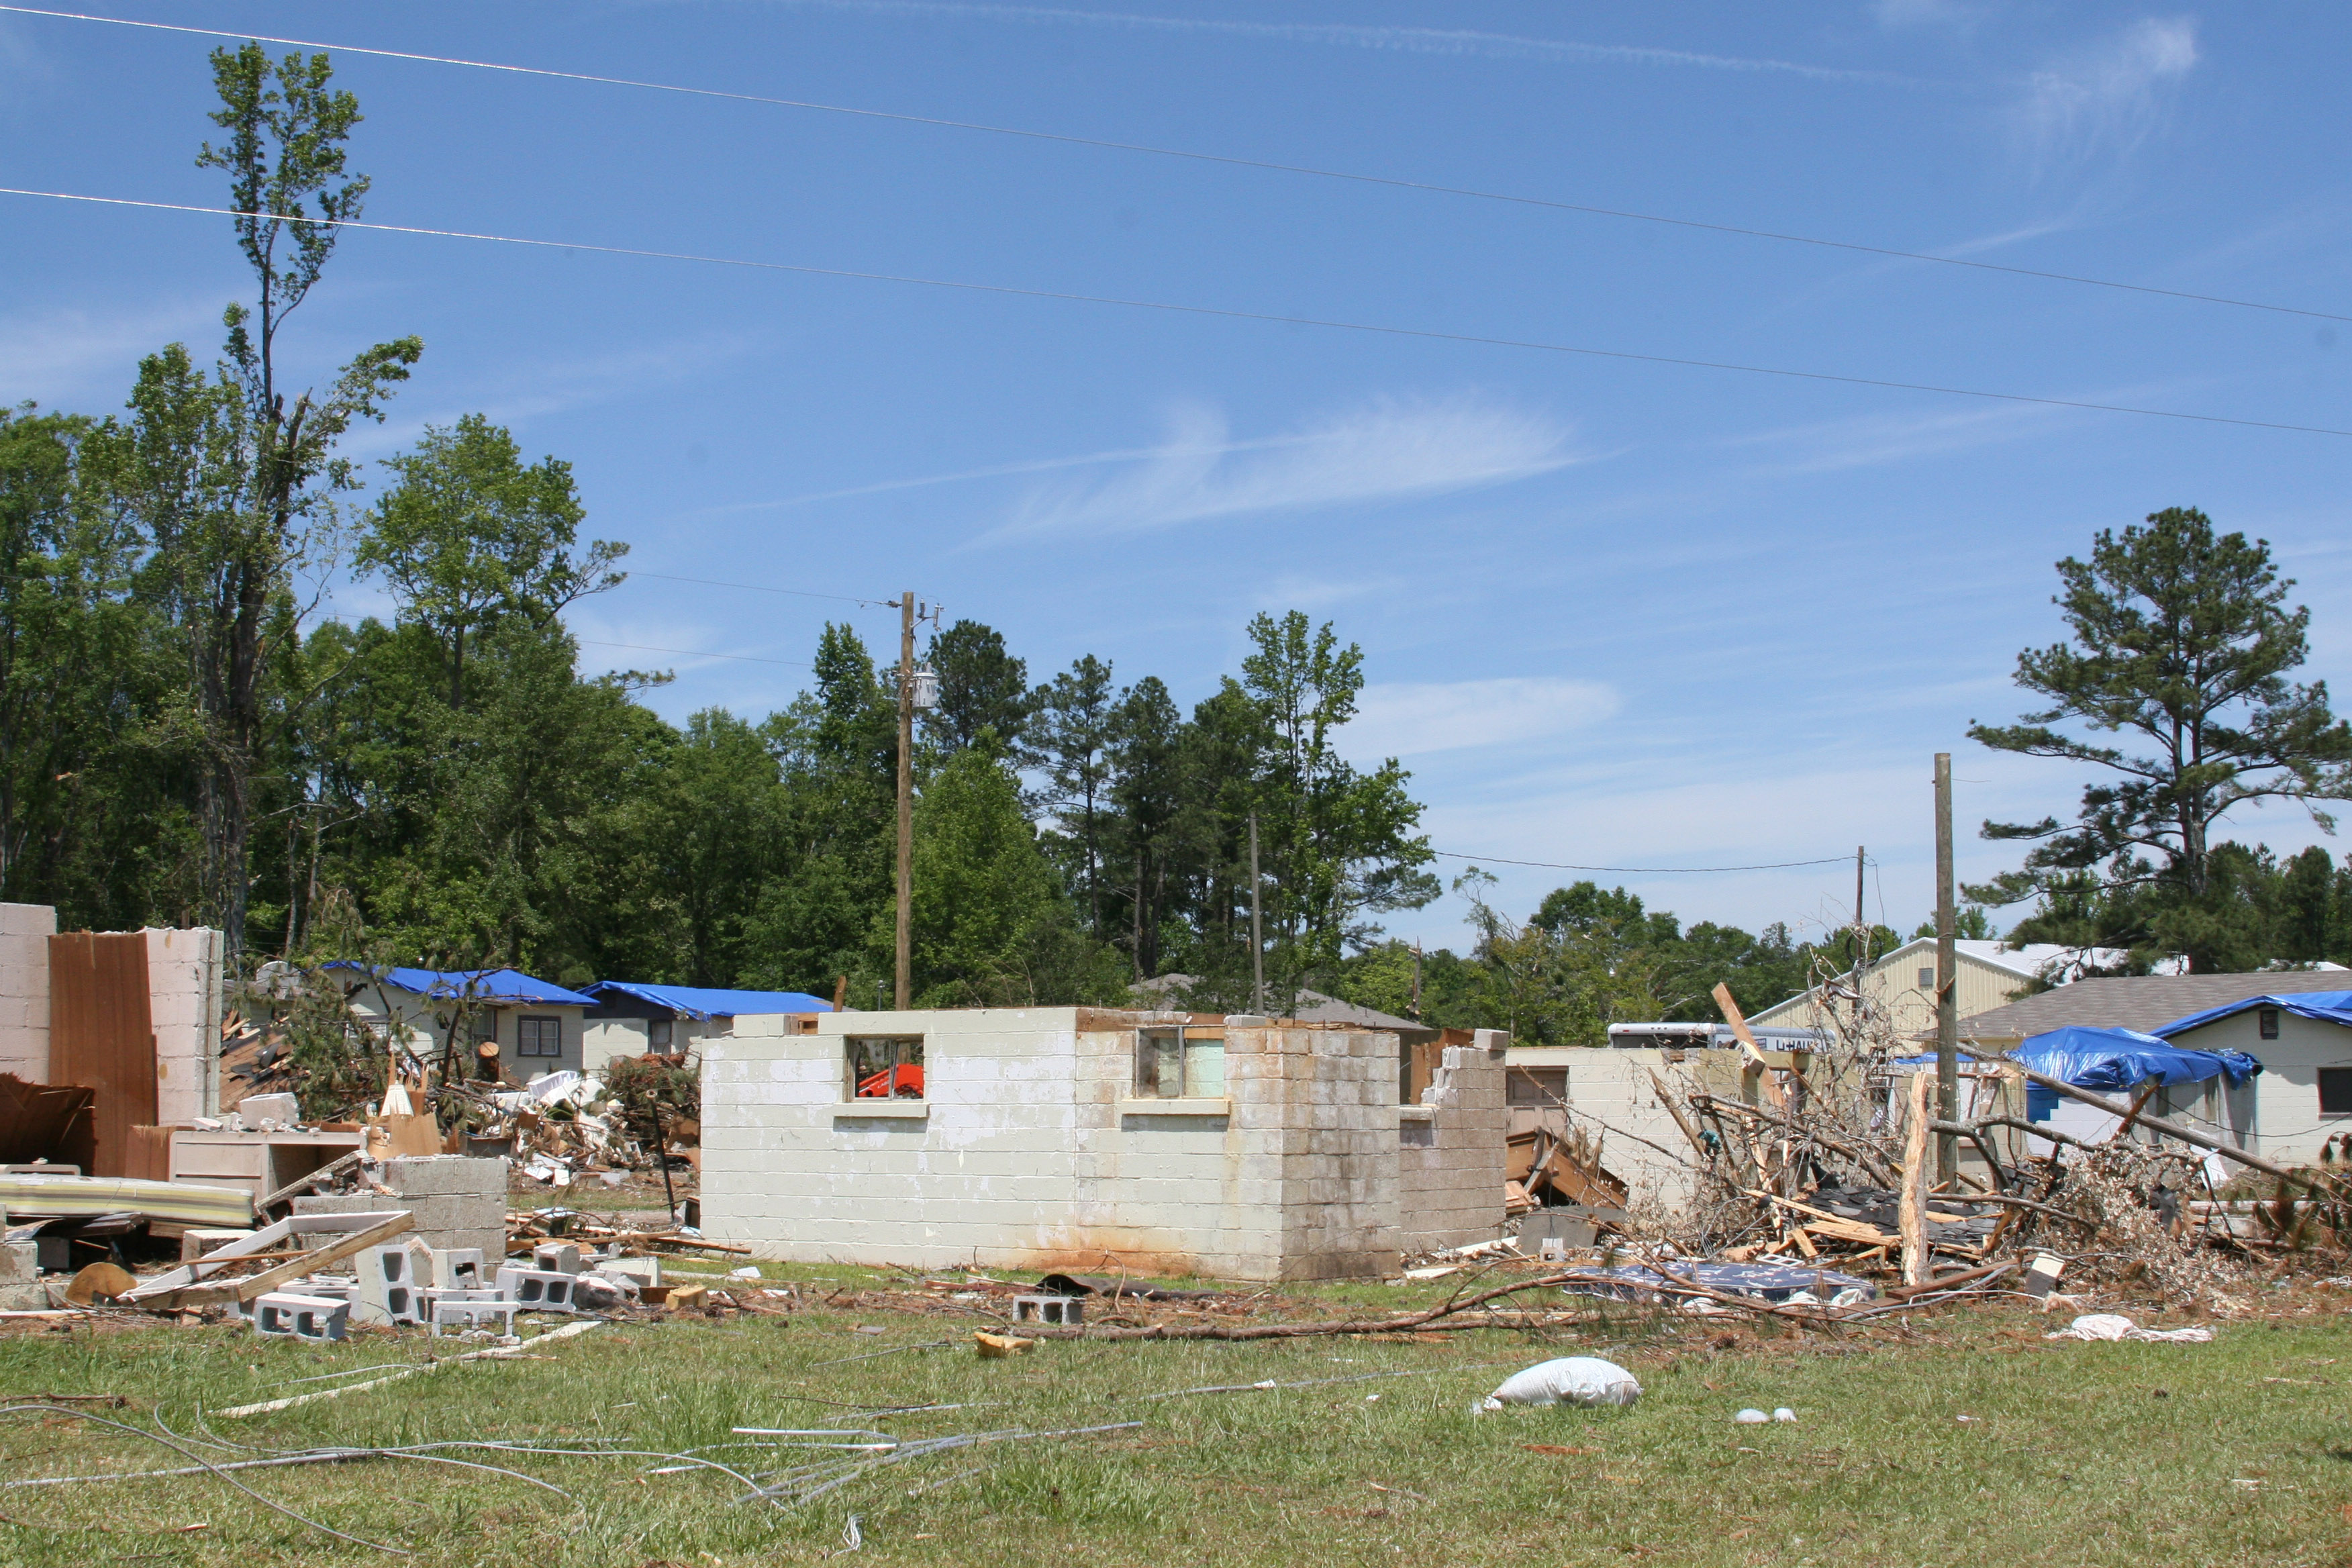 Roofs and walls were blown from masonary block cabins at Pirkle Campground in Spalding County, Ga., by a tornado that struck the area on May 28, 2011.